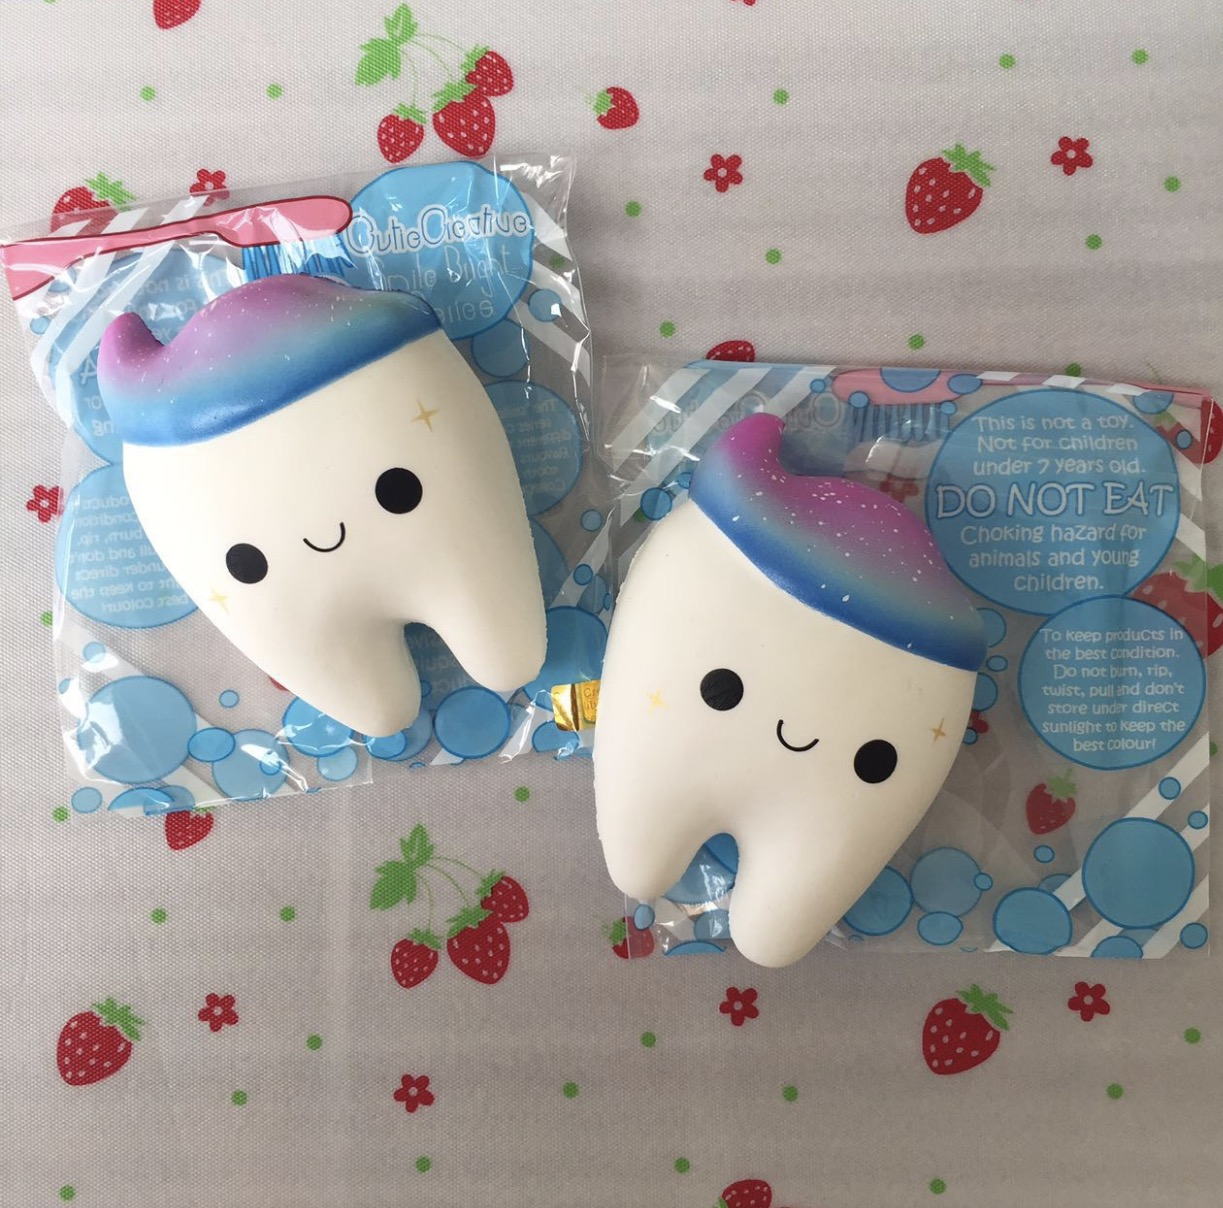 Squishy Galaxy Tooth : Cutiecreative galaxy tooth squishy rare licensed scented